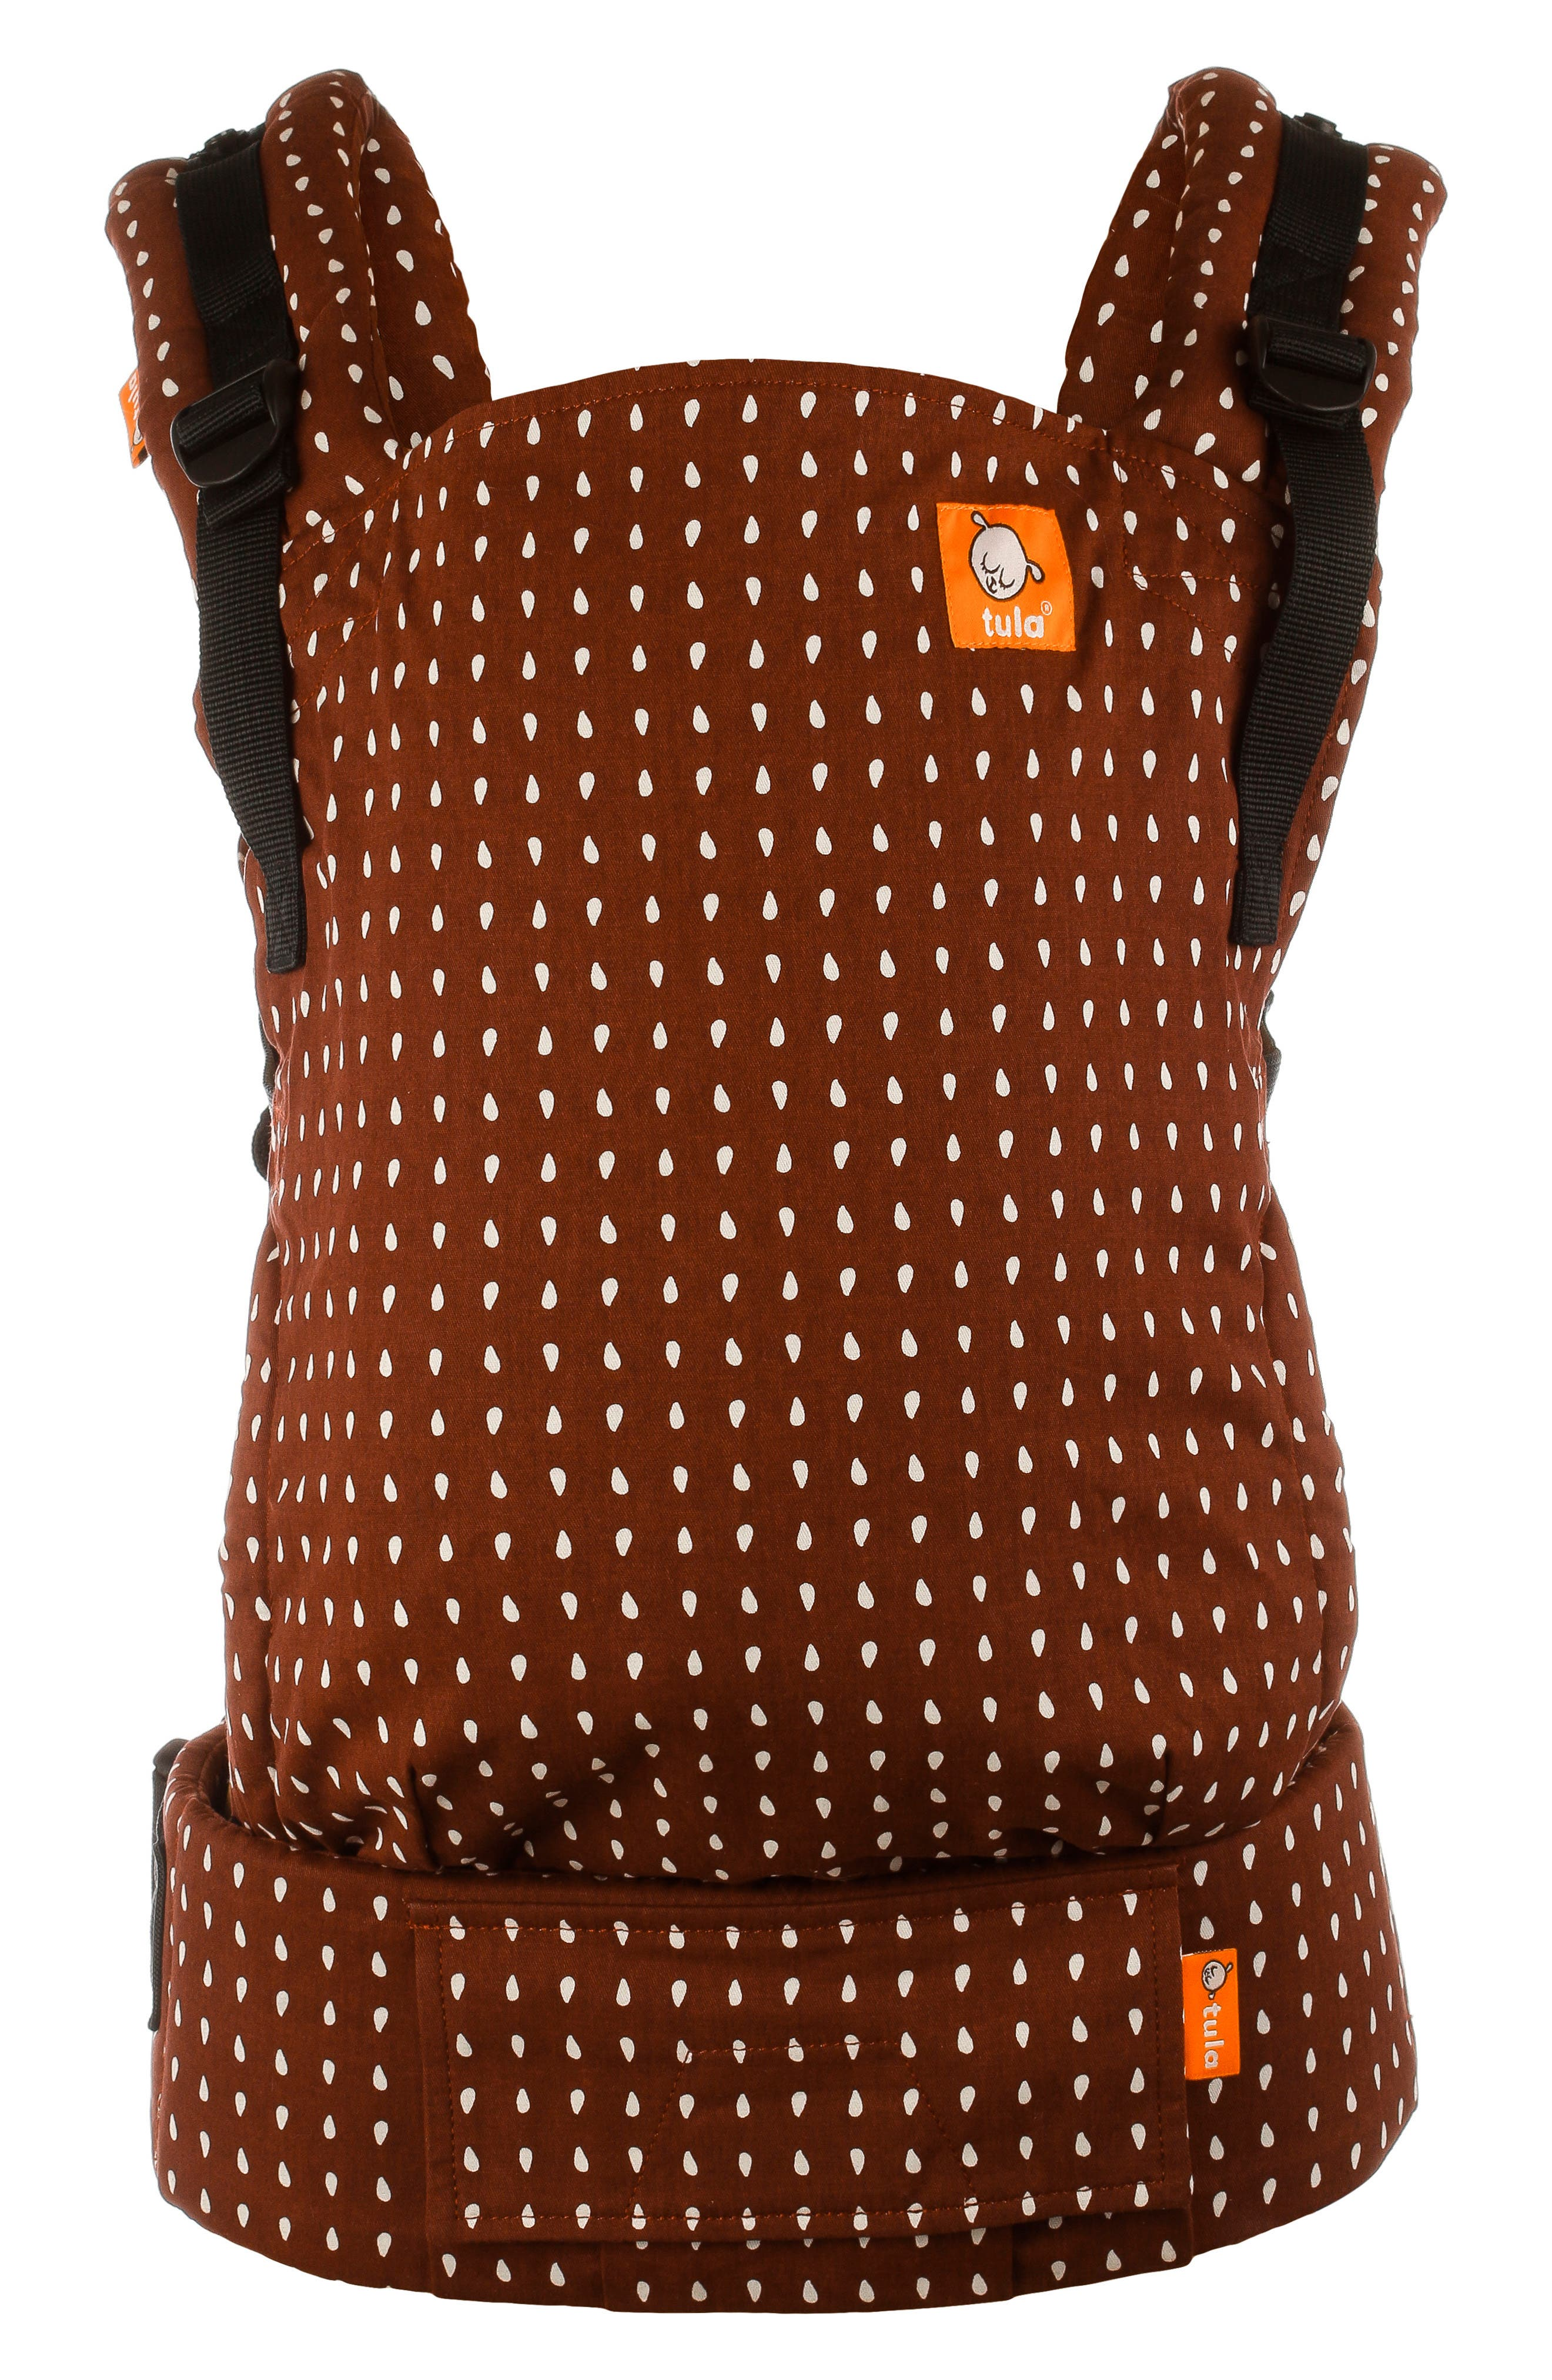 BABY TULA,                             Inquire Free-to-Grow Baby Carrier,                             Main thumbnail 1, color,                             INQUIRE